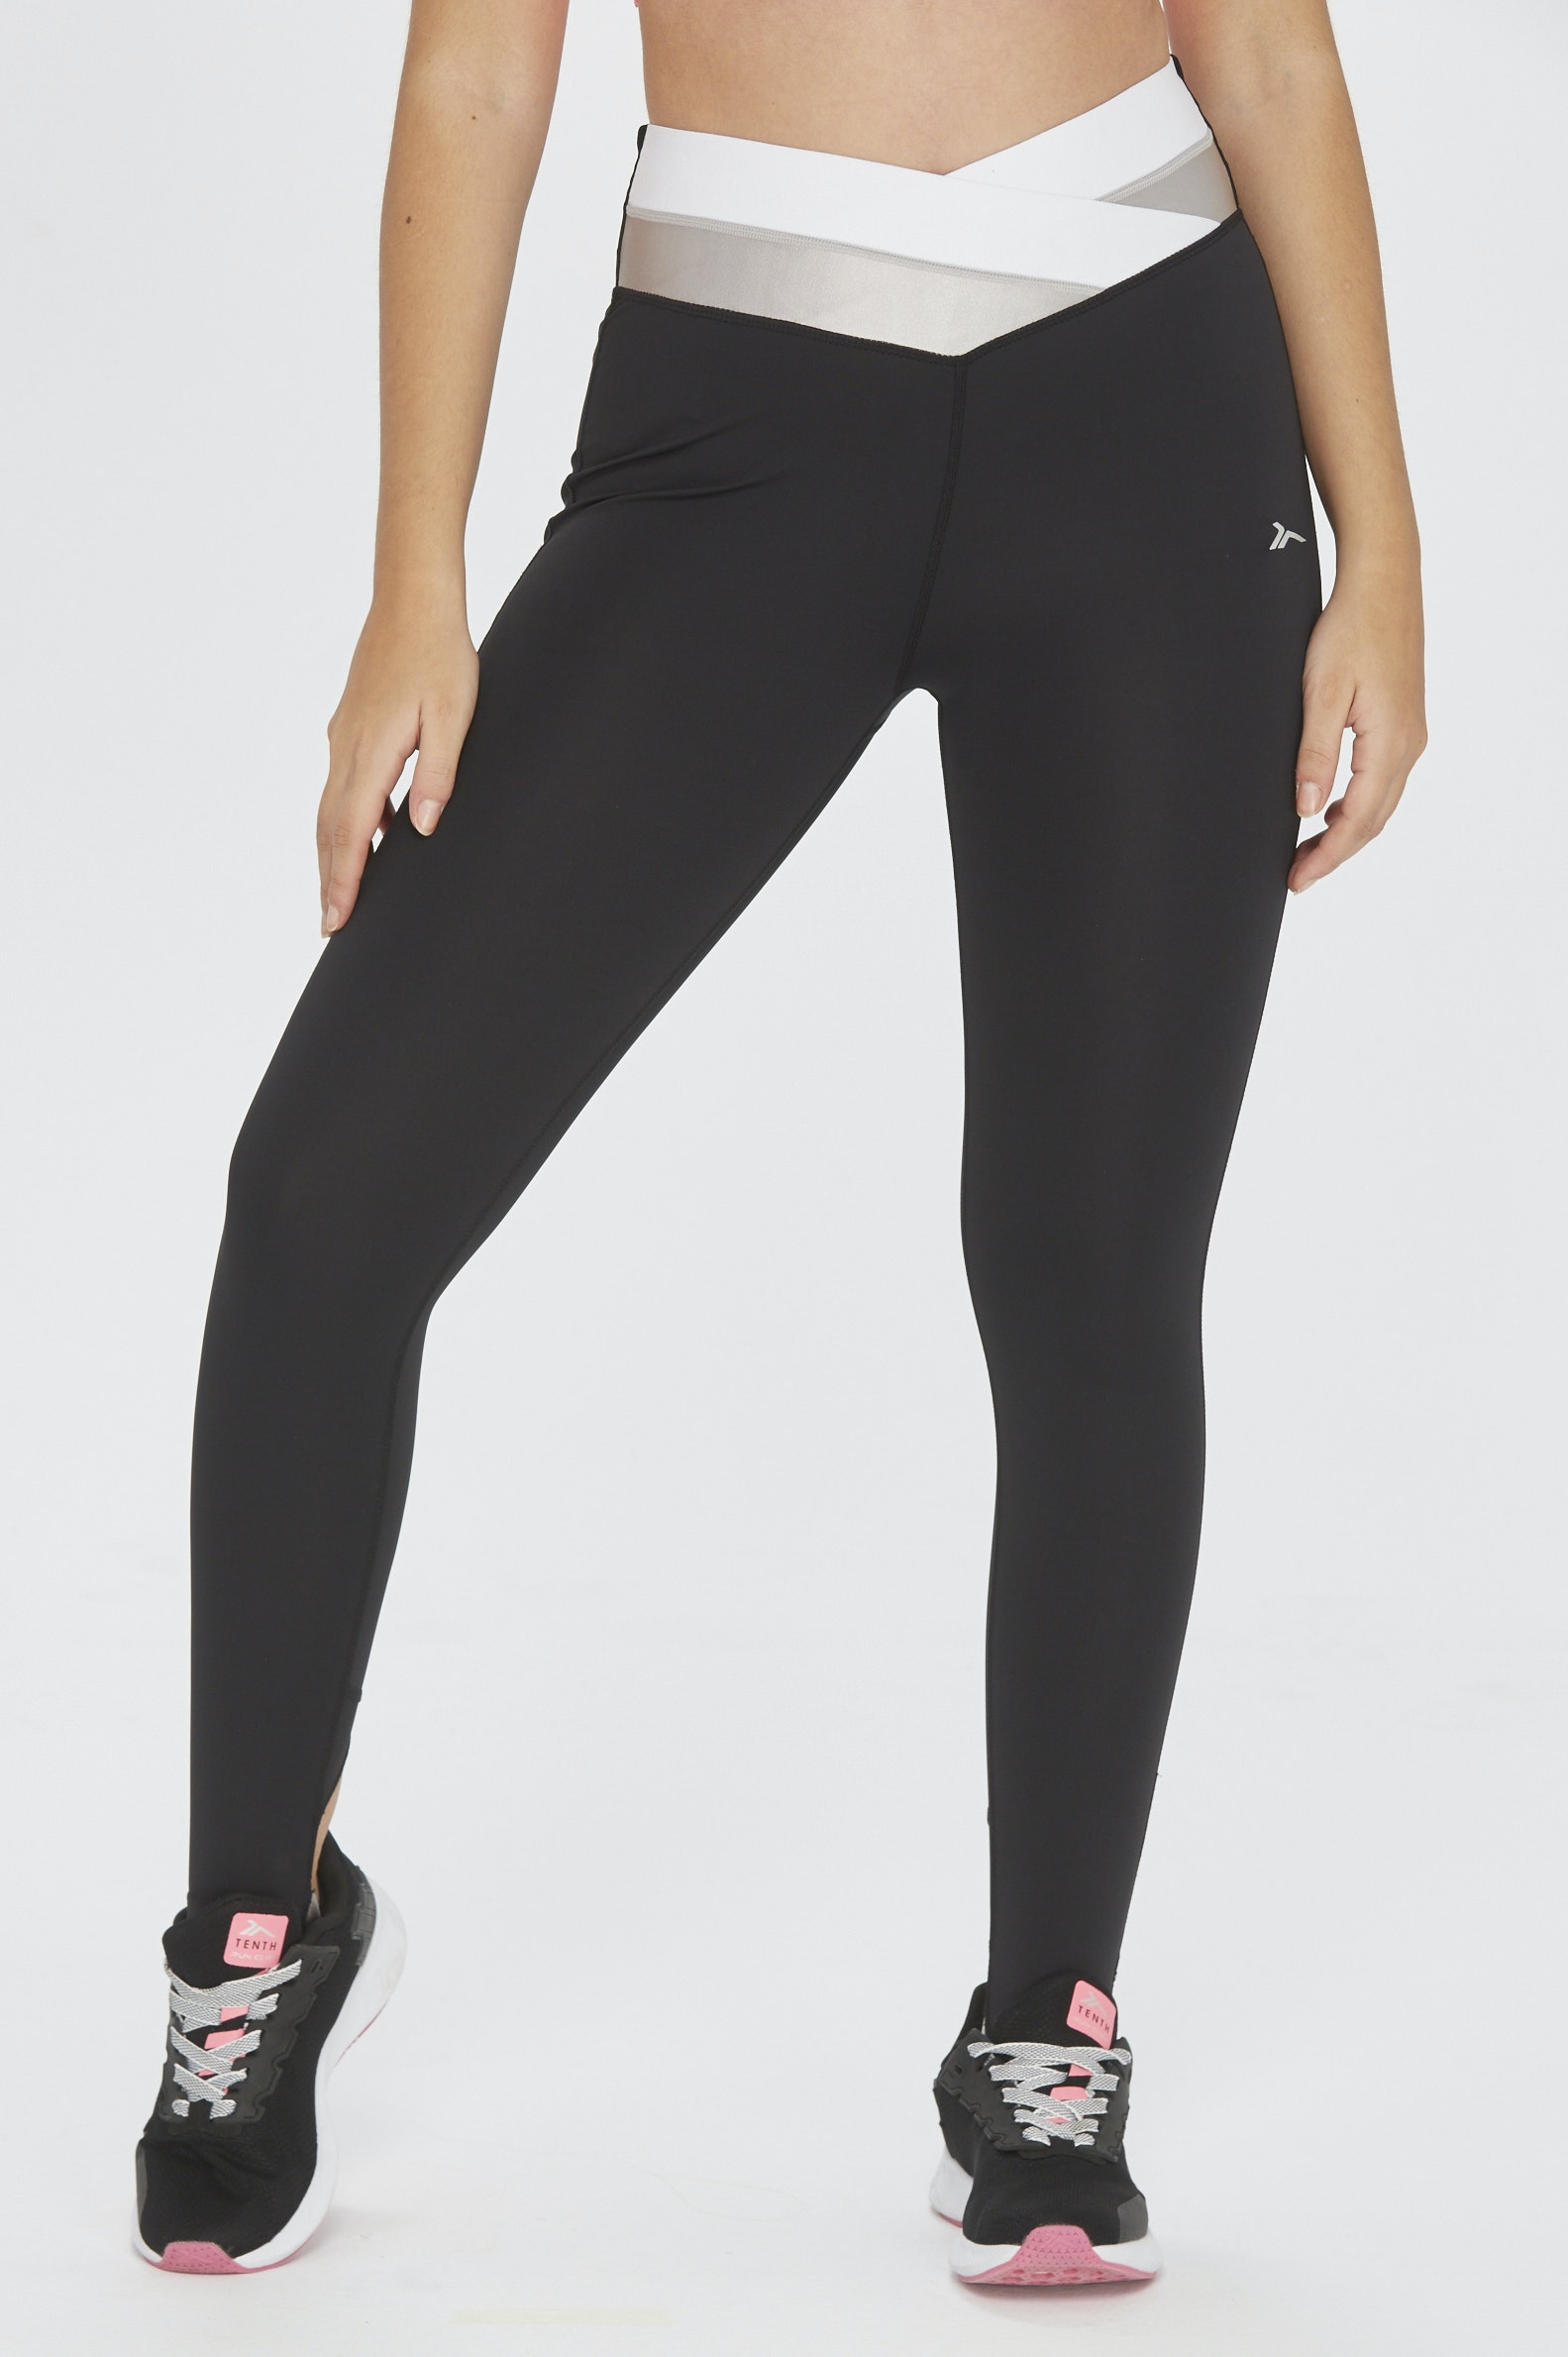 LEGGINGS RUNNING TENTH PUSH UP CONCEPT GOMA MULHER